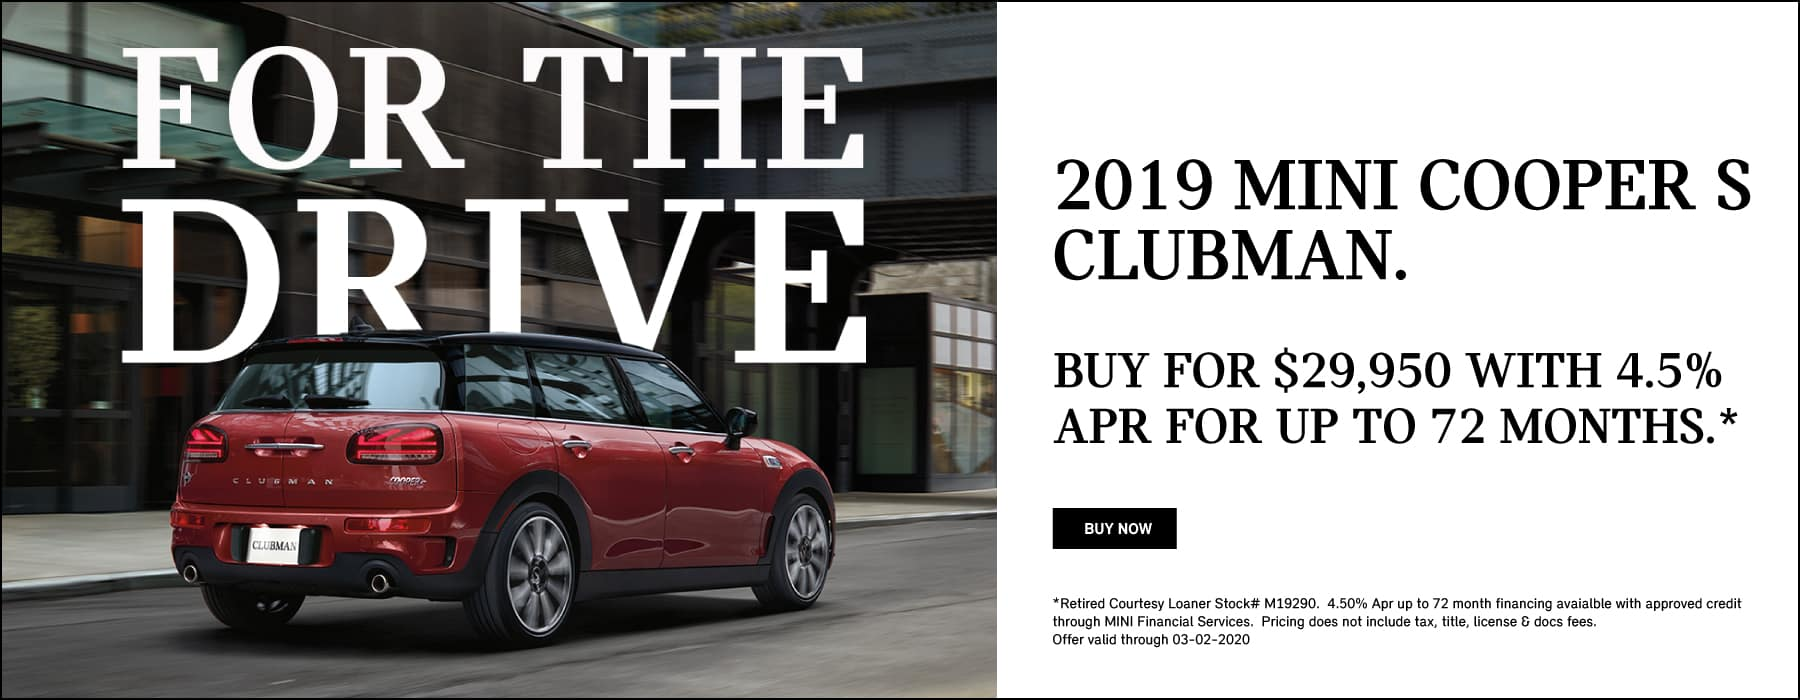 M19290 $37,325  2019 MINI Cooper S Clubman Signataure Premium Buy for $29,950 savings of $7,375 4.50% APR up to 72 months available